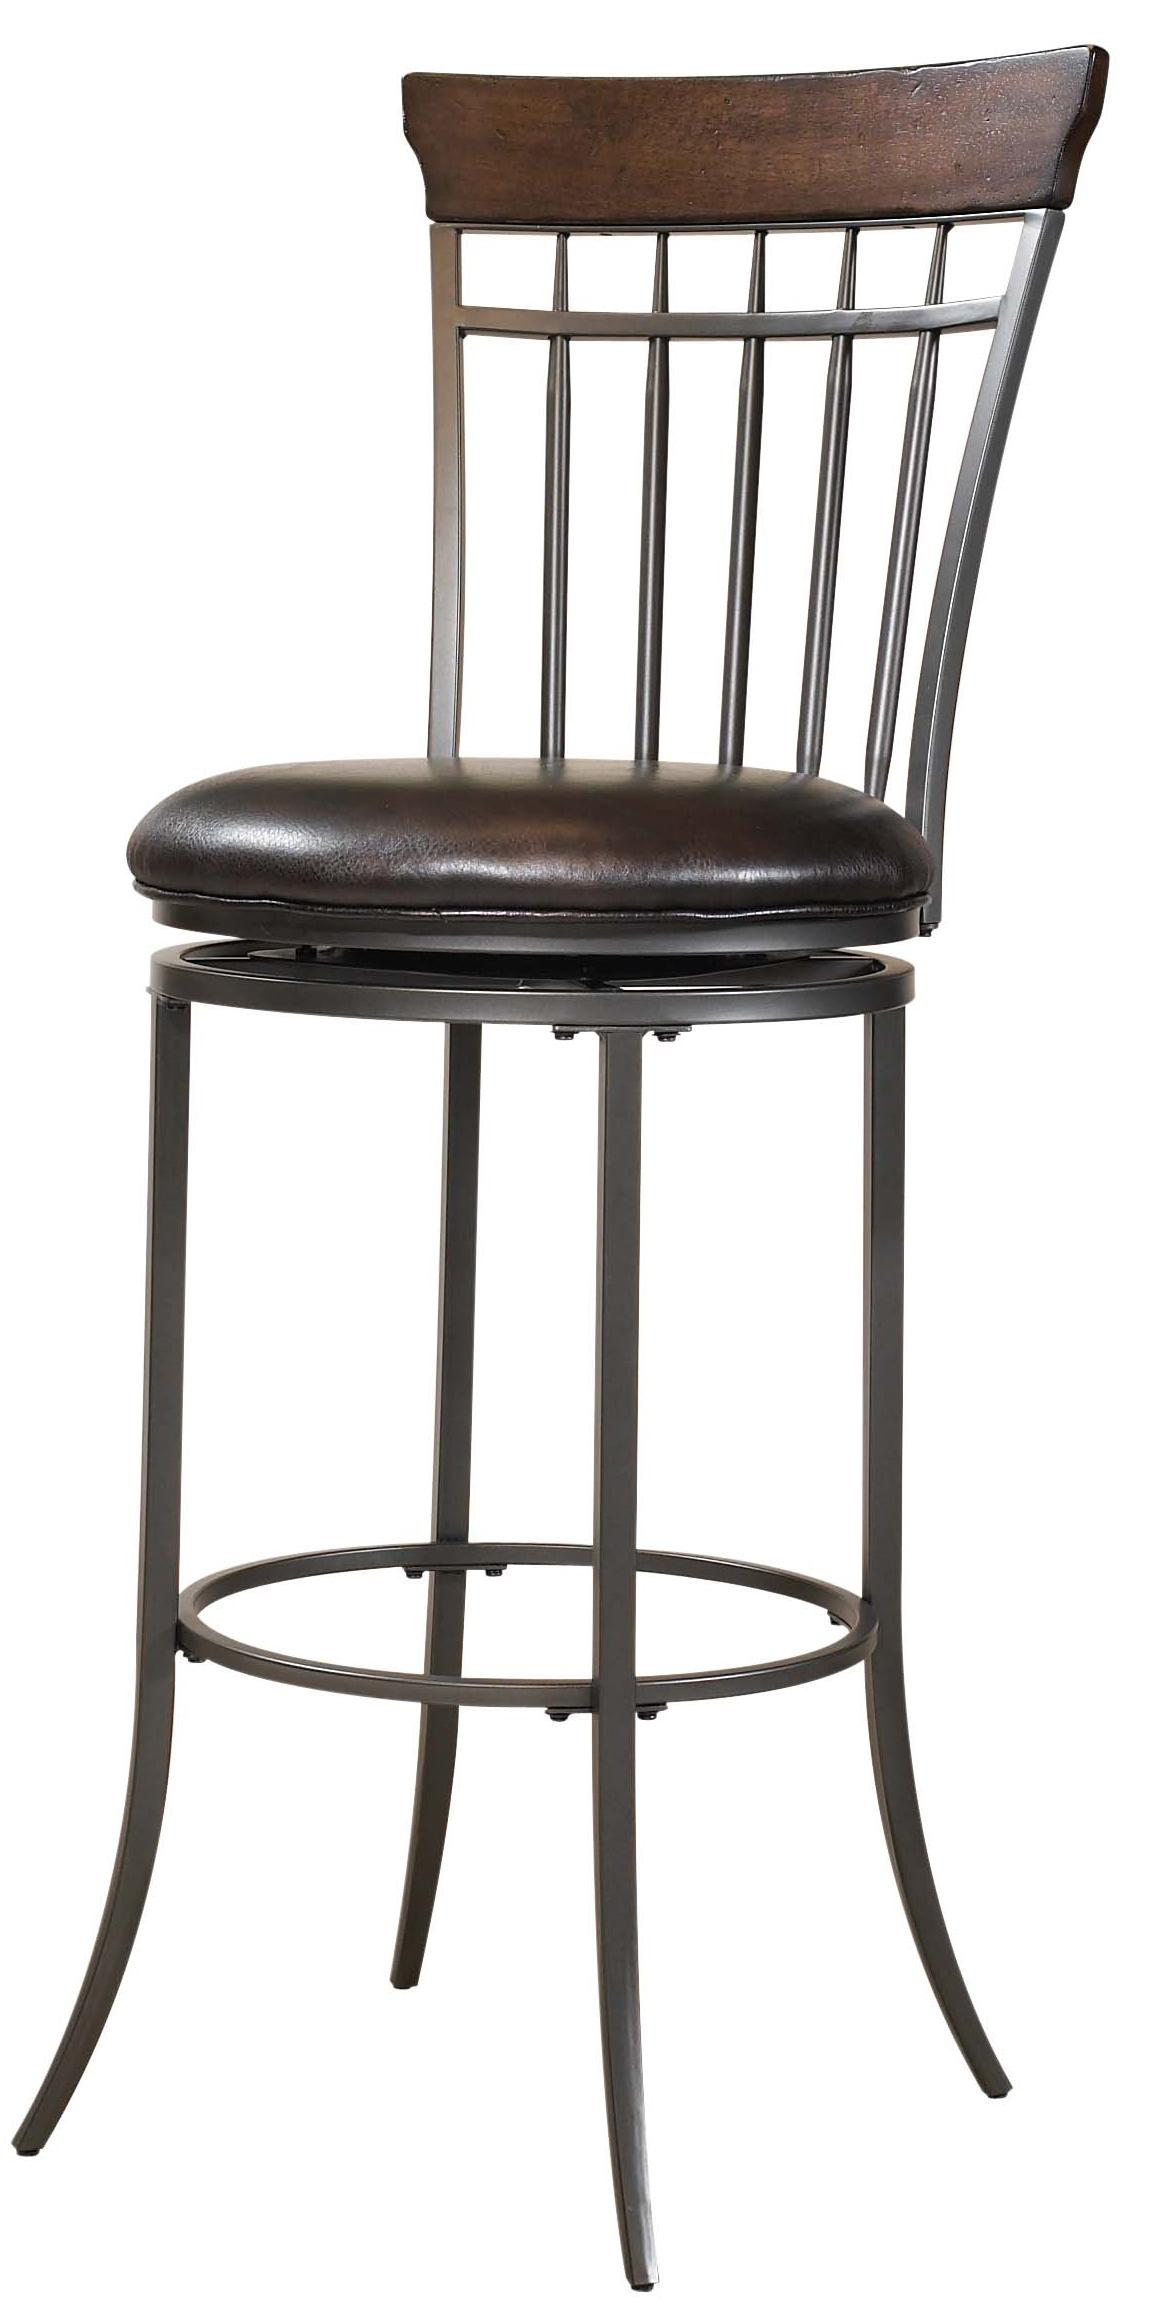 Stools Swivel Counter Stool by Hillsdale at Johnny Janosik